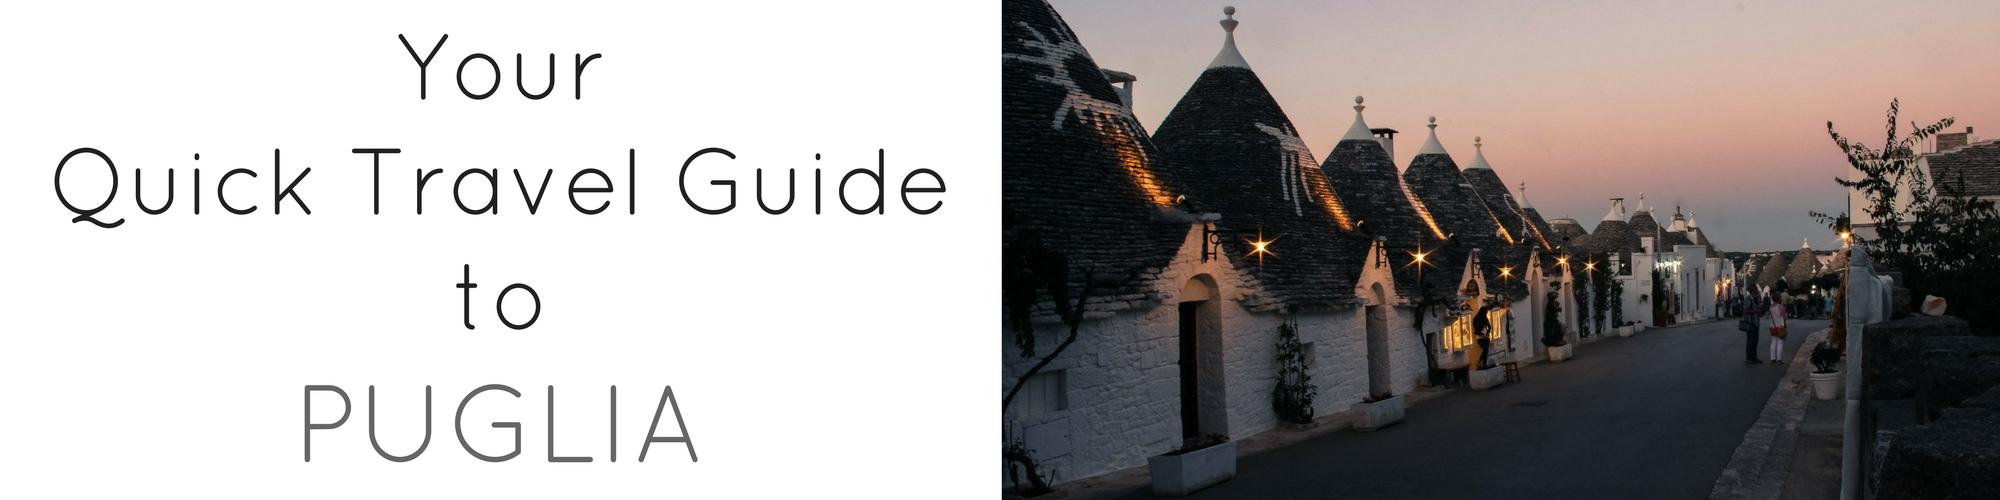 Your Quick Guide to Puglia - Authentic Traveling - Header